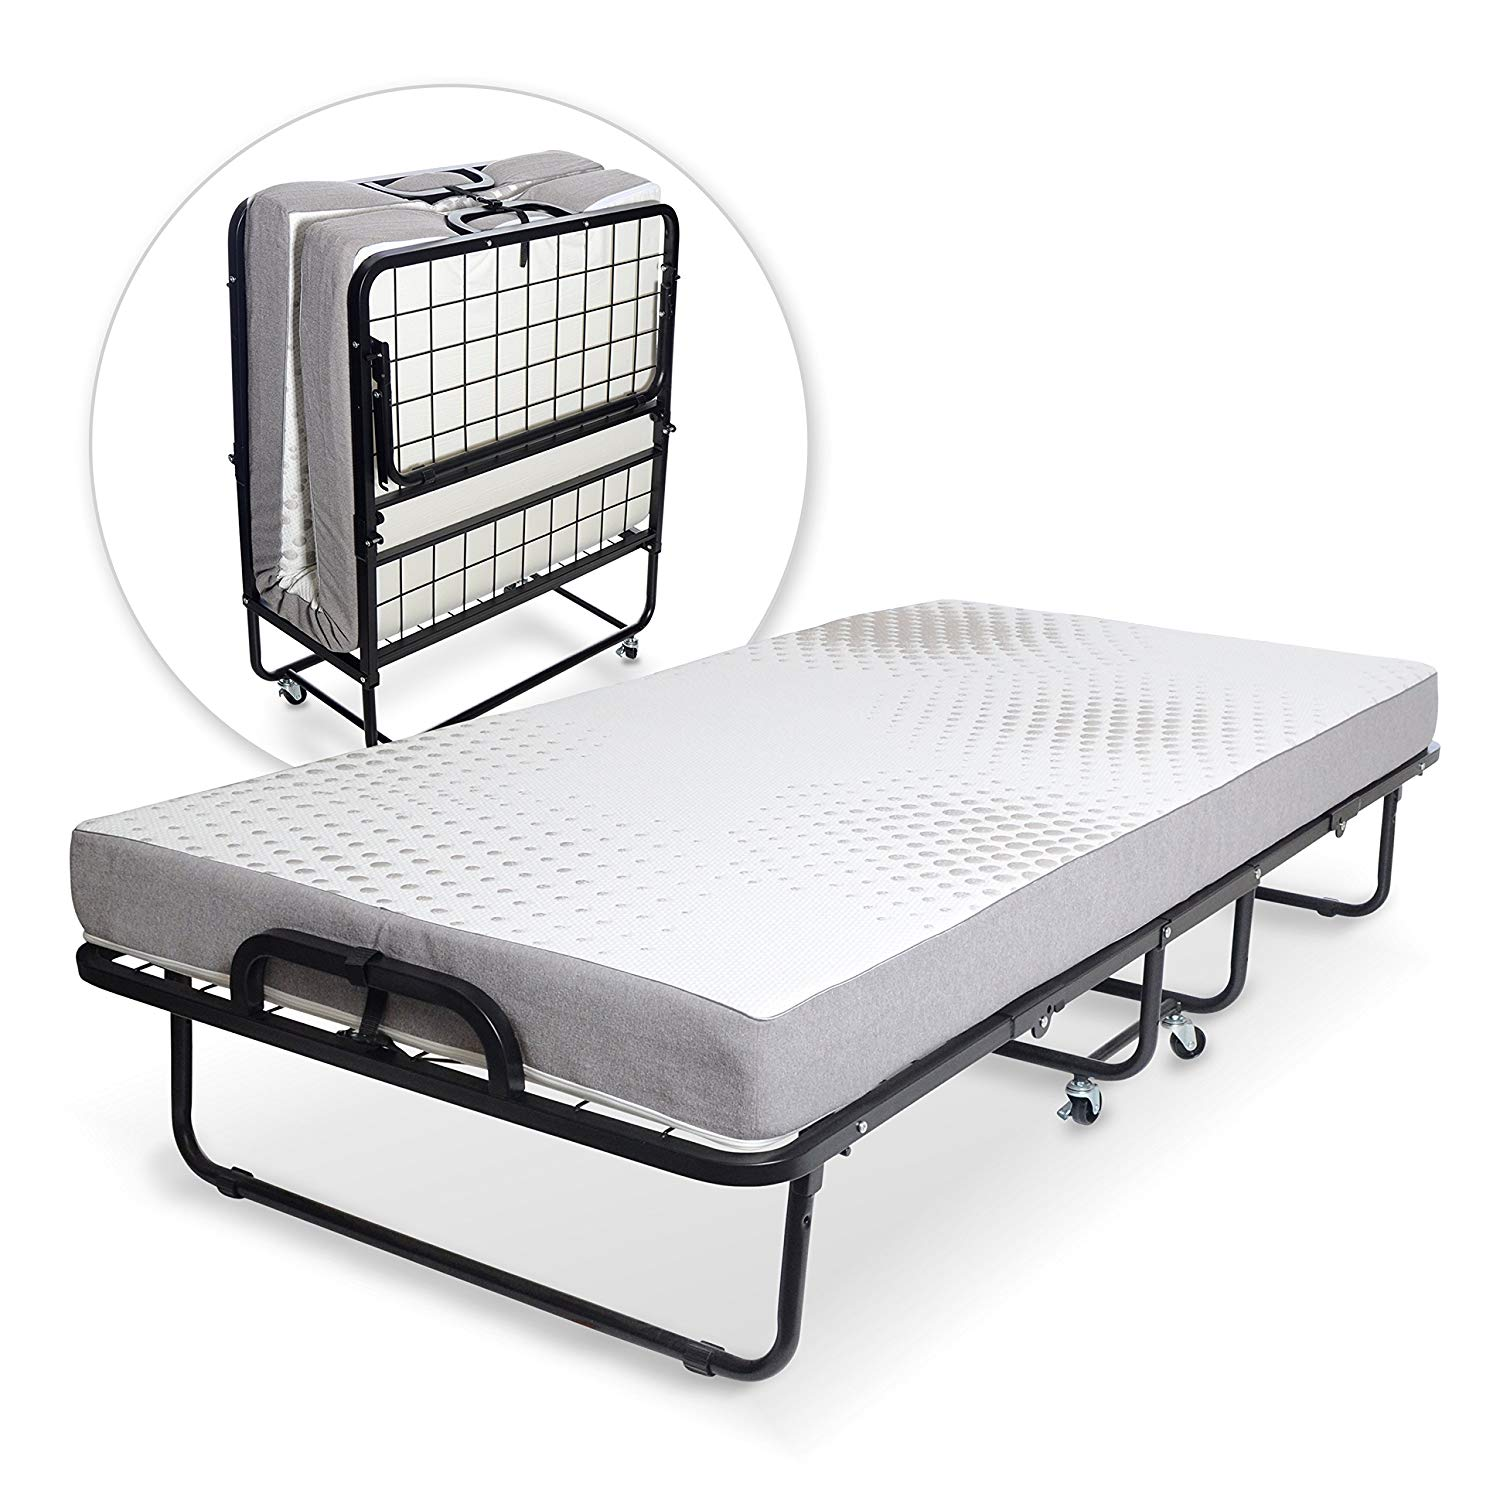 Best Rollaway Beds For Adults